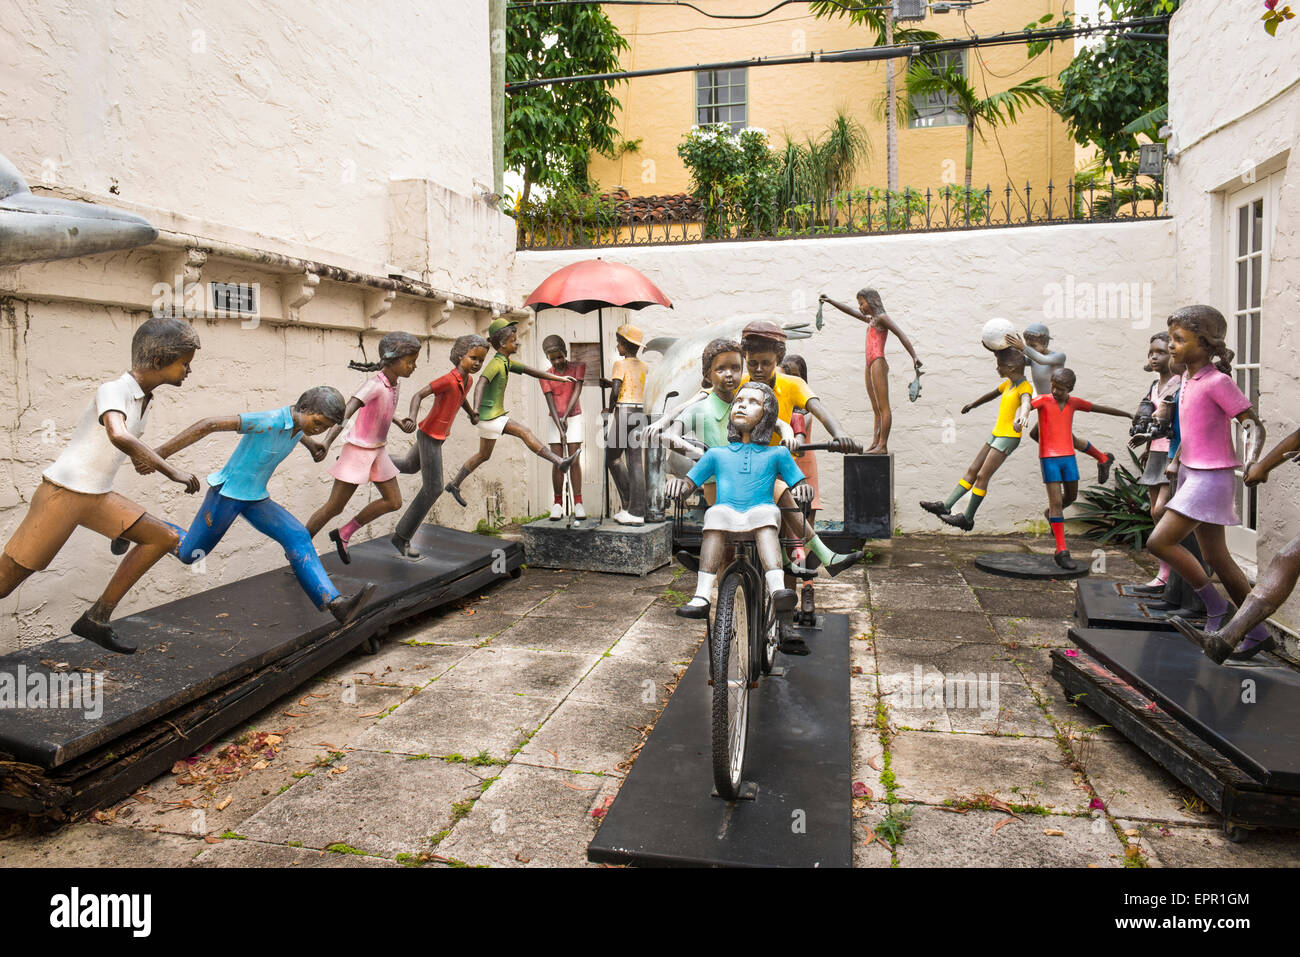 Florida Palm Beach Worth Avenue art work child children figures at play fun playing bicycle by artist Prince Monyo Stock Photo